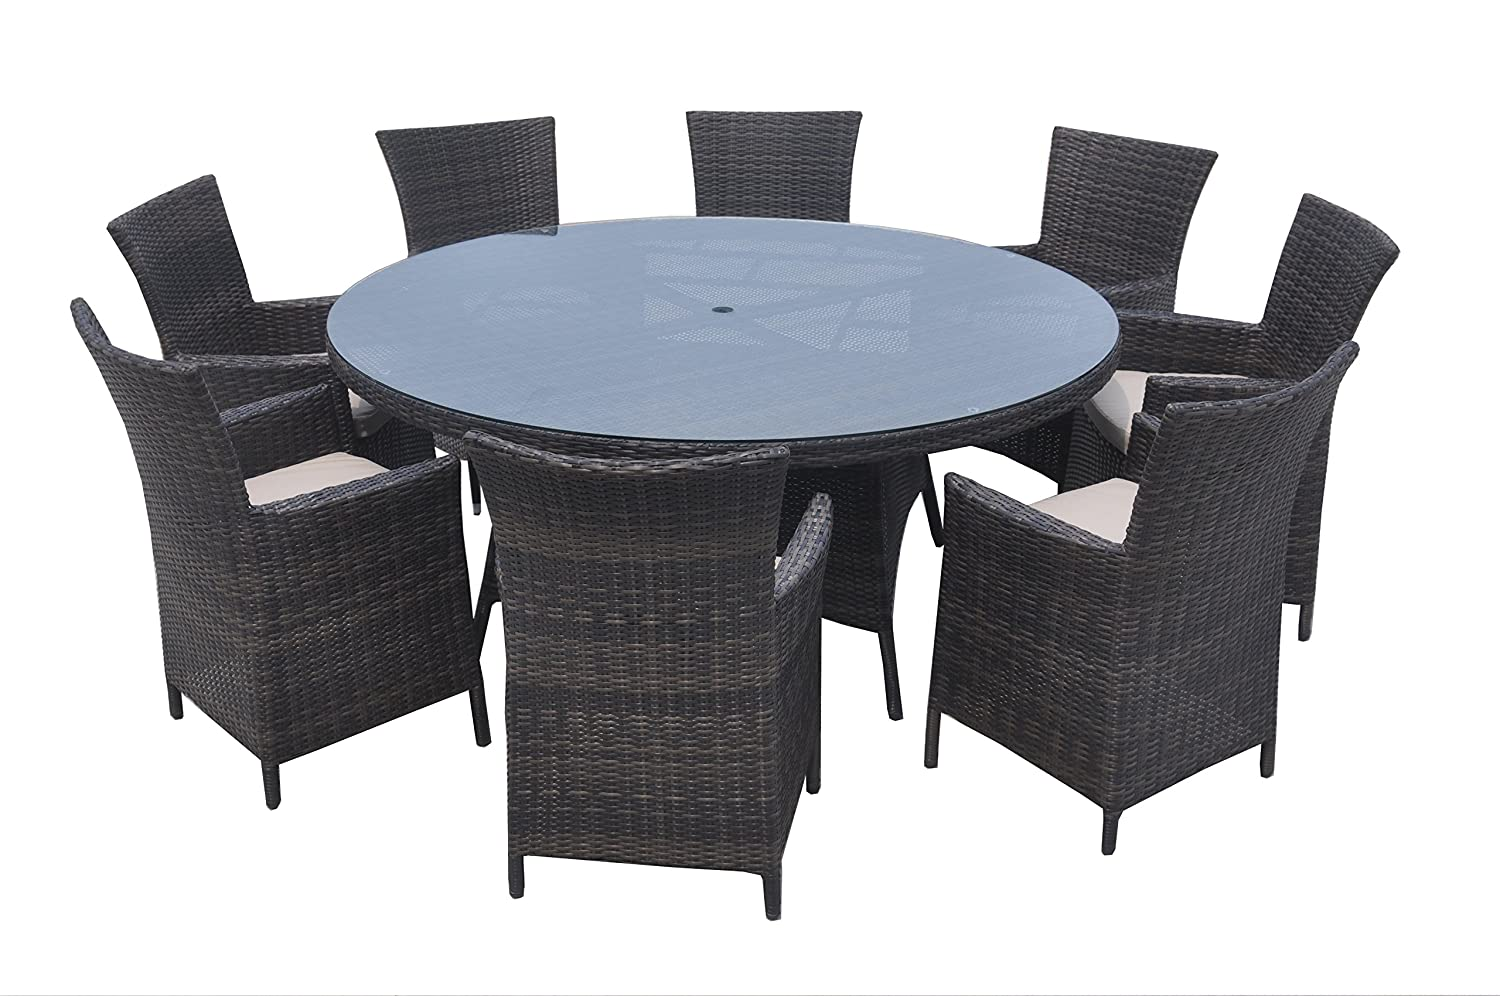 9 Piece Wicker Dining Sets, Patio Round Dining Set – Taupe